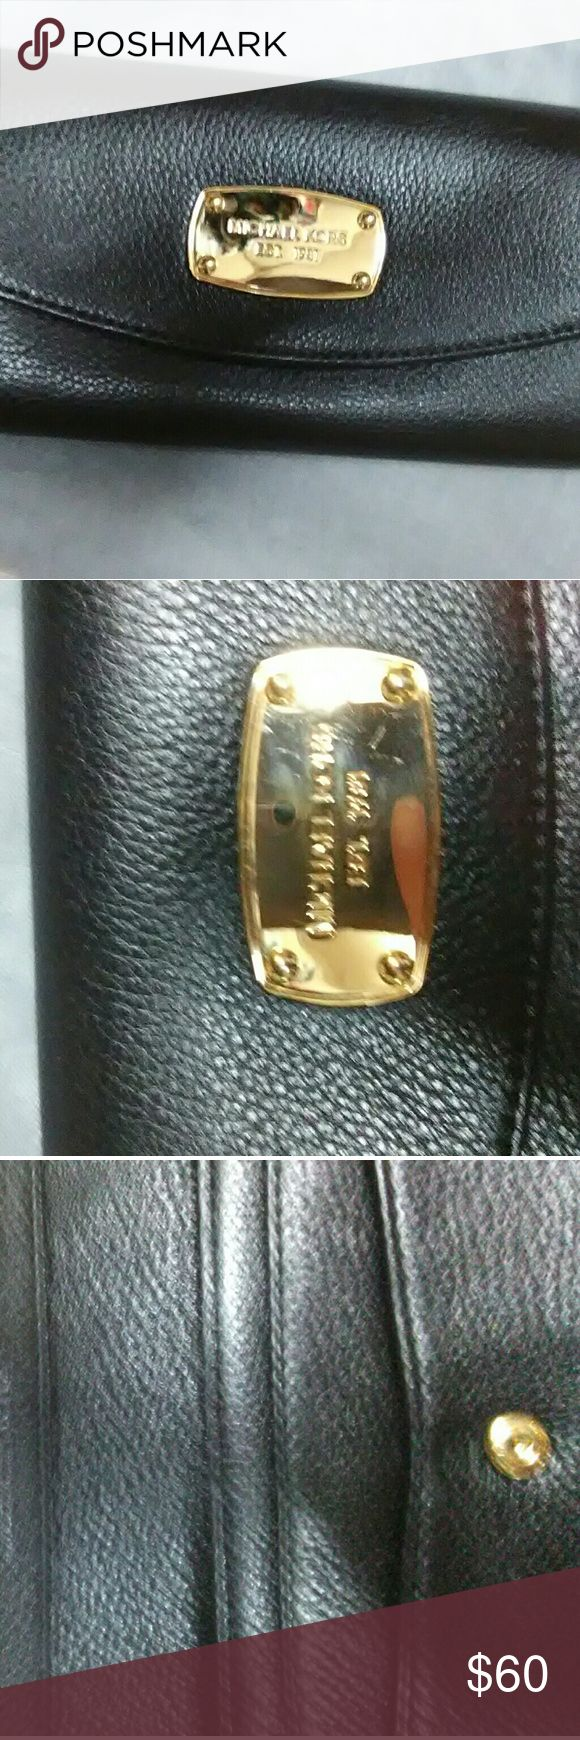 Michael Kors Jet Set Saffiano Leather Wallet? Great condition Minor scratches on gold emblem 8 inches long 4 inches wide Michael Kors Bags Wallets